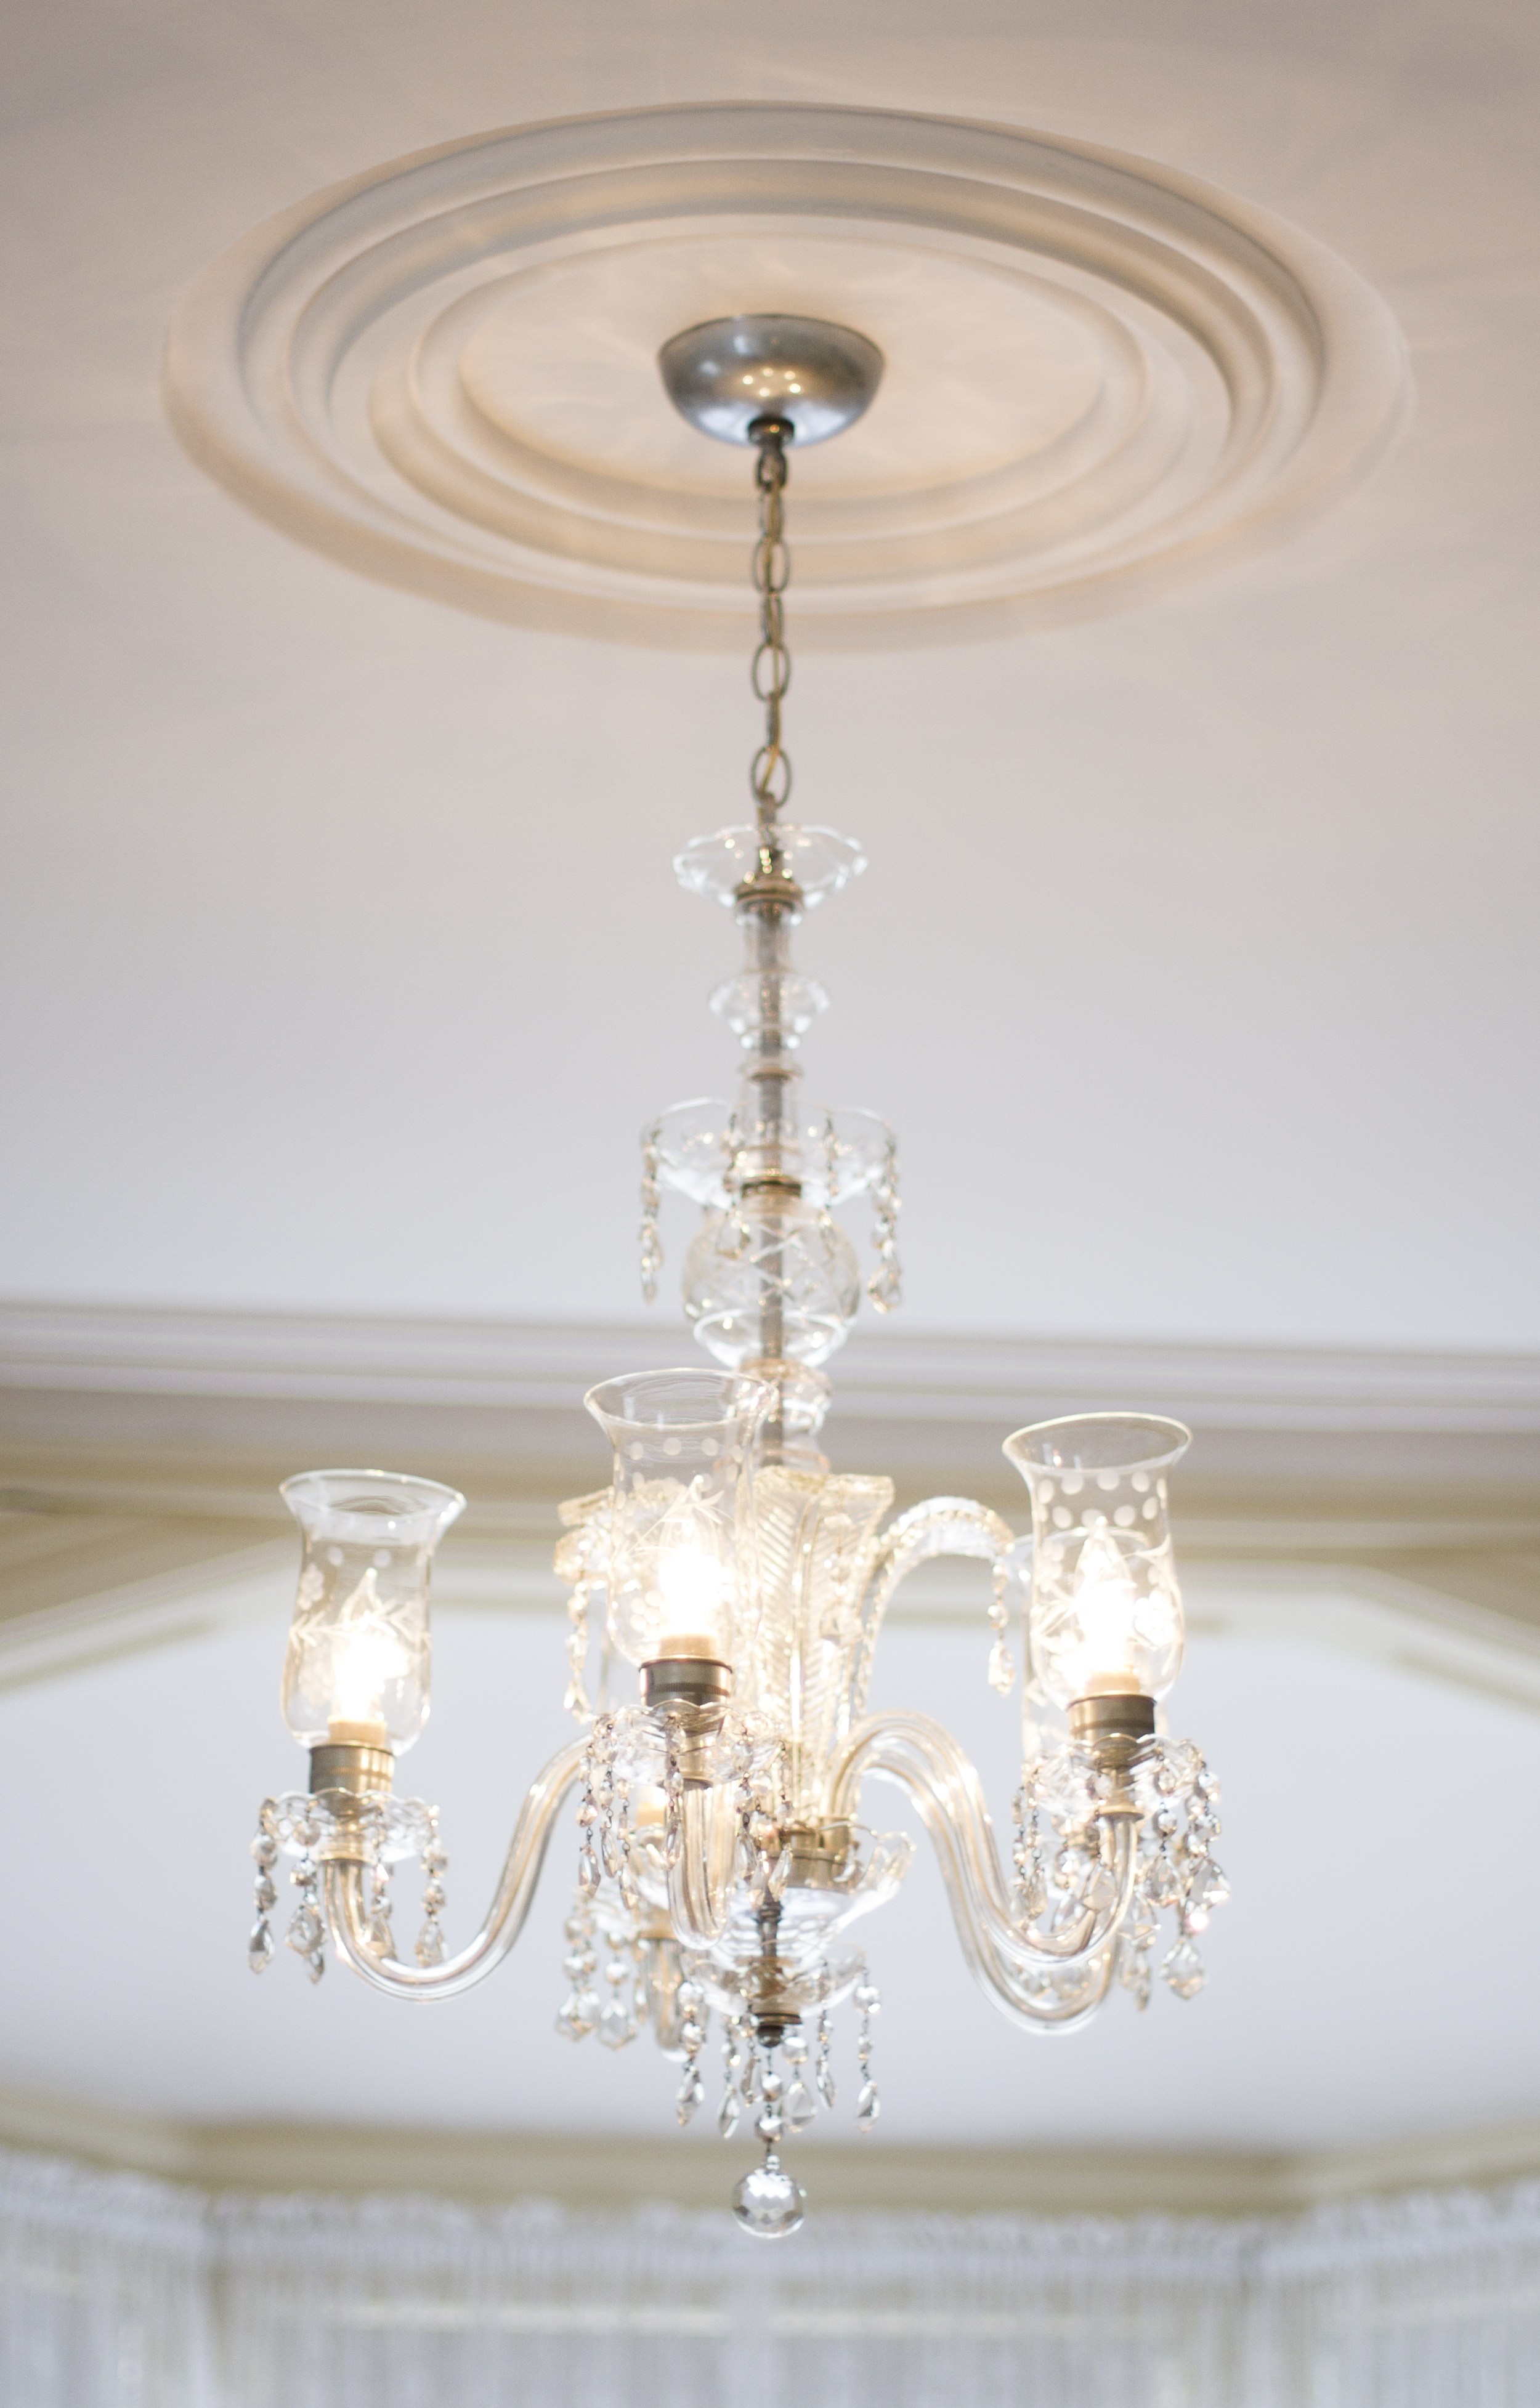 Authentic chandelier and mouldings